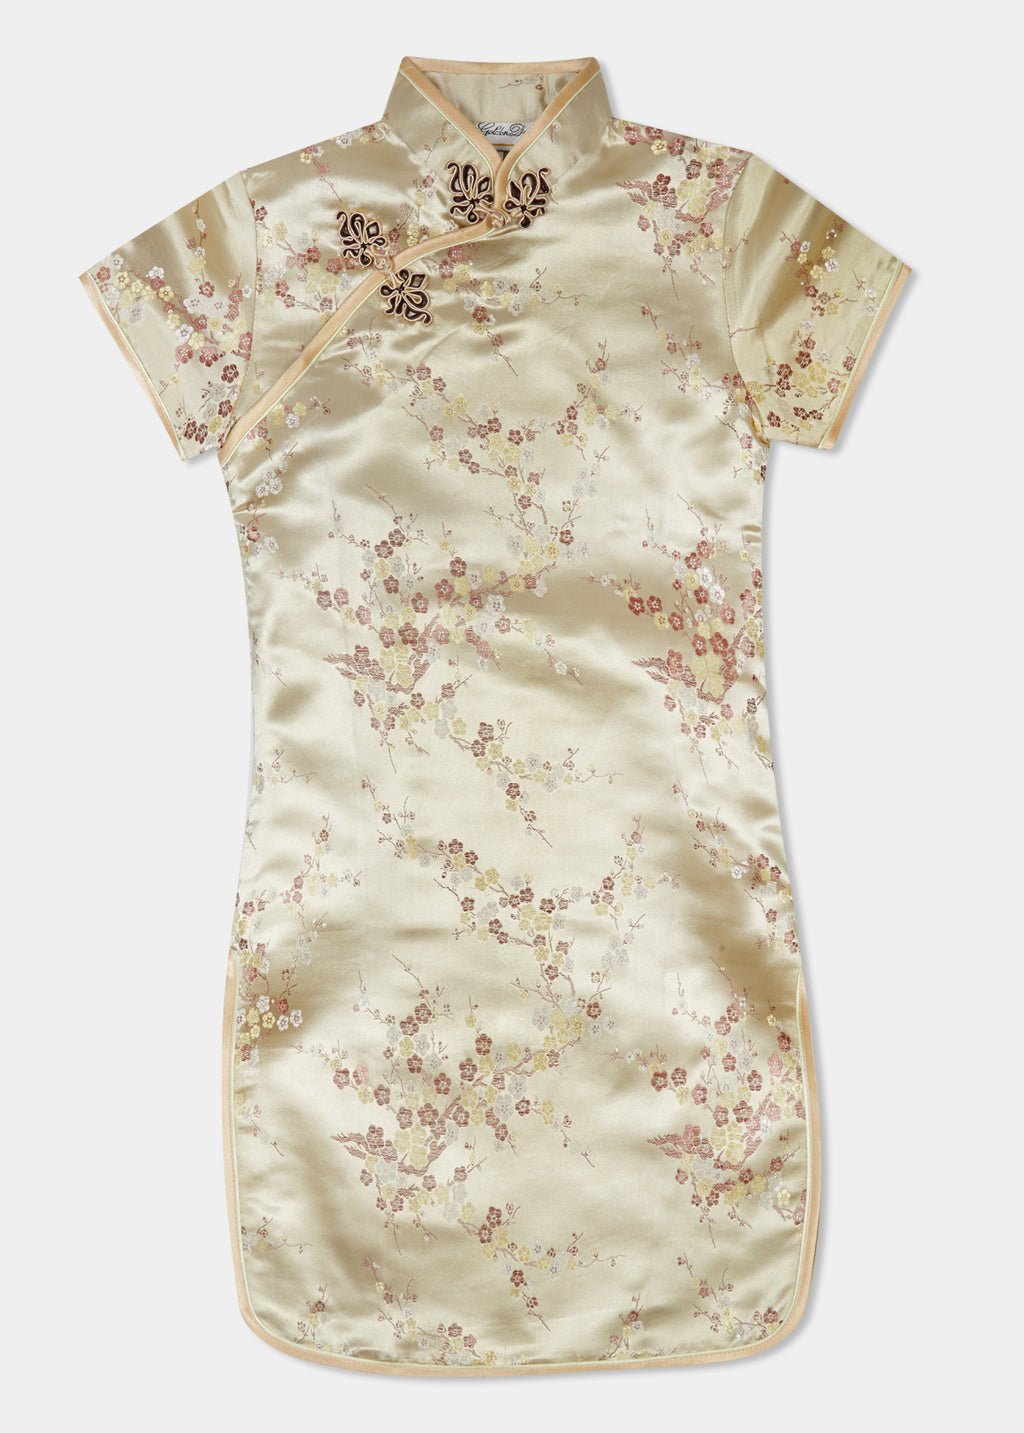 The Cheongsam or Qipao, is a dress with distinctive Chinese features of mandarin collar, side splits and hand stitched flower and knot frog fastenings. Manufactured in authentic high quality silk/rayon brocade in a classic gold cherry blossom design - a symbol of beauty and love. The perfect way to dress up.